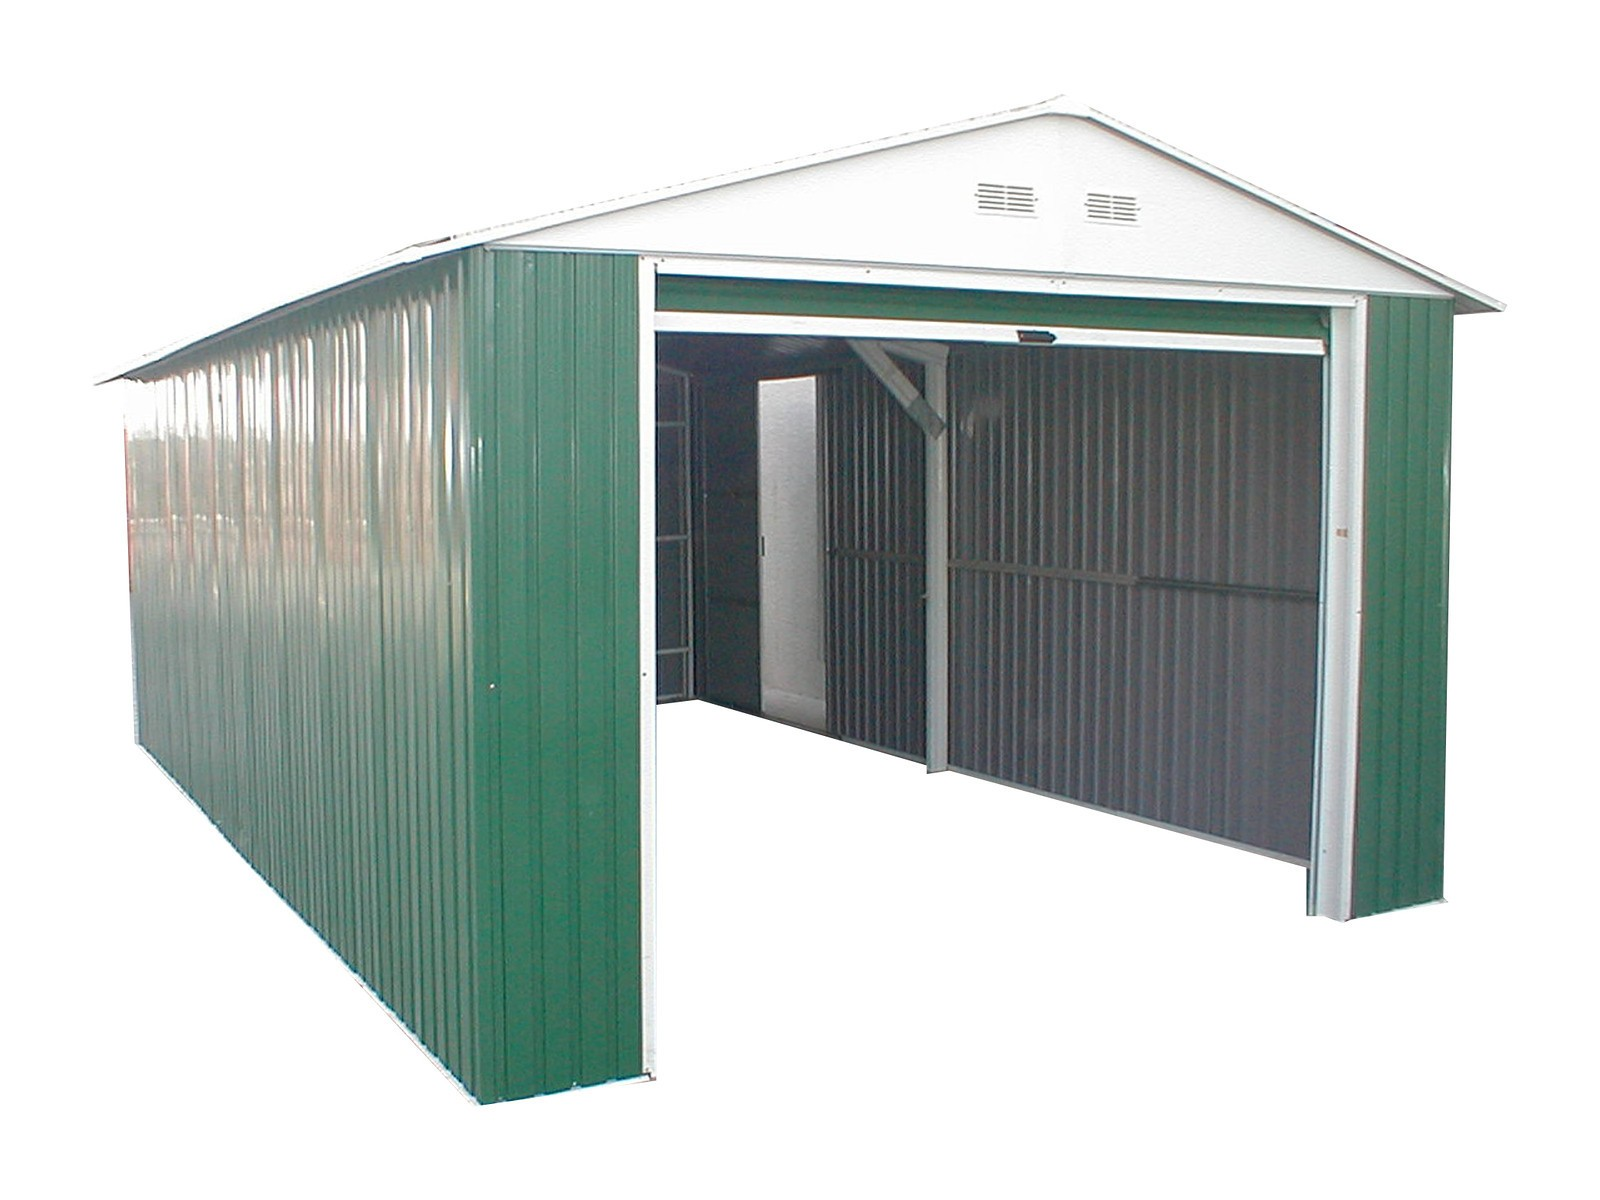 Garage Home Extension Duramax 55261 Imperial Metal Building 12x32 55261 Is On Sale